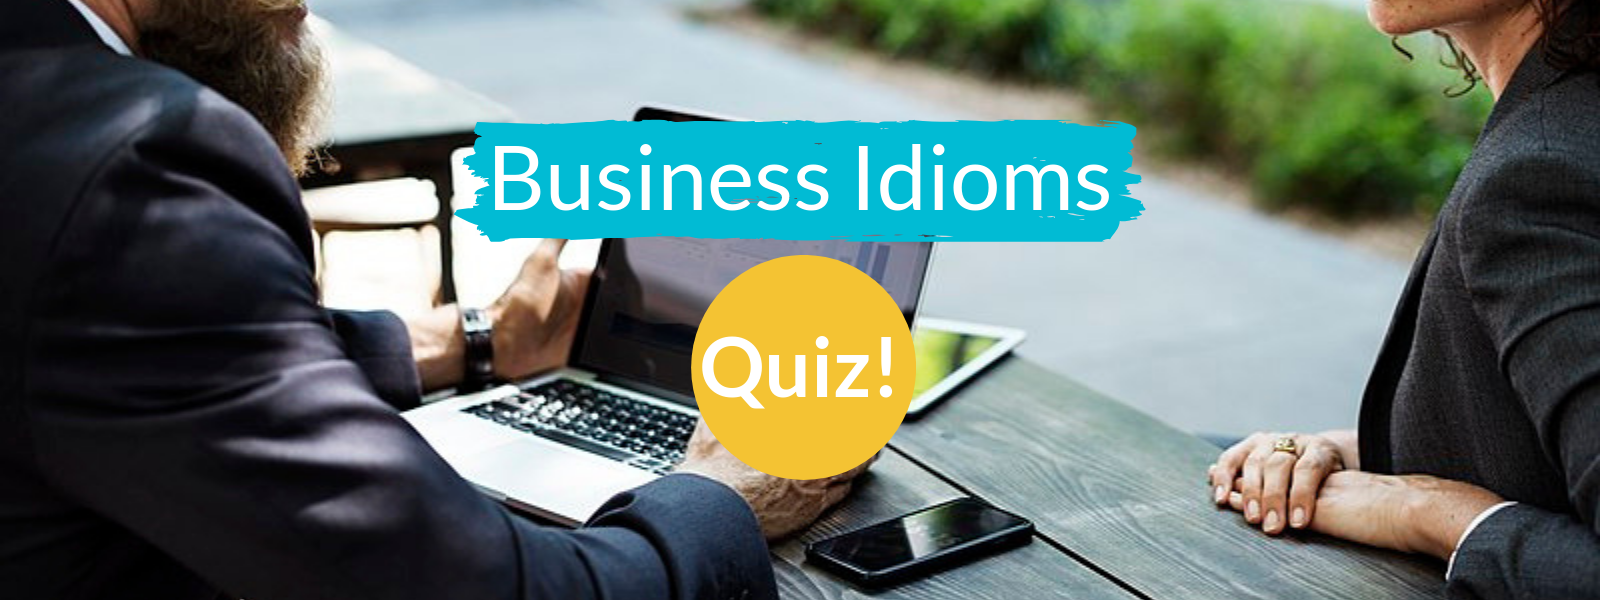 Quiz business idioms Talaera-1